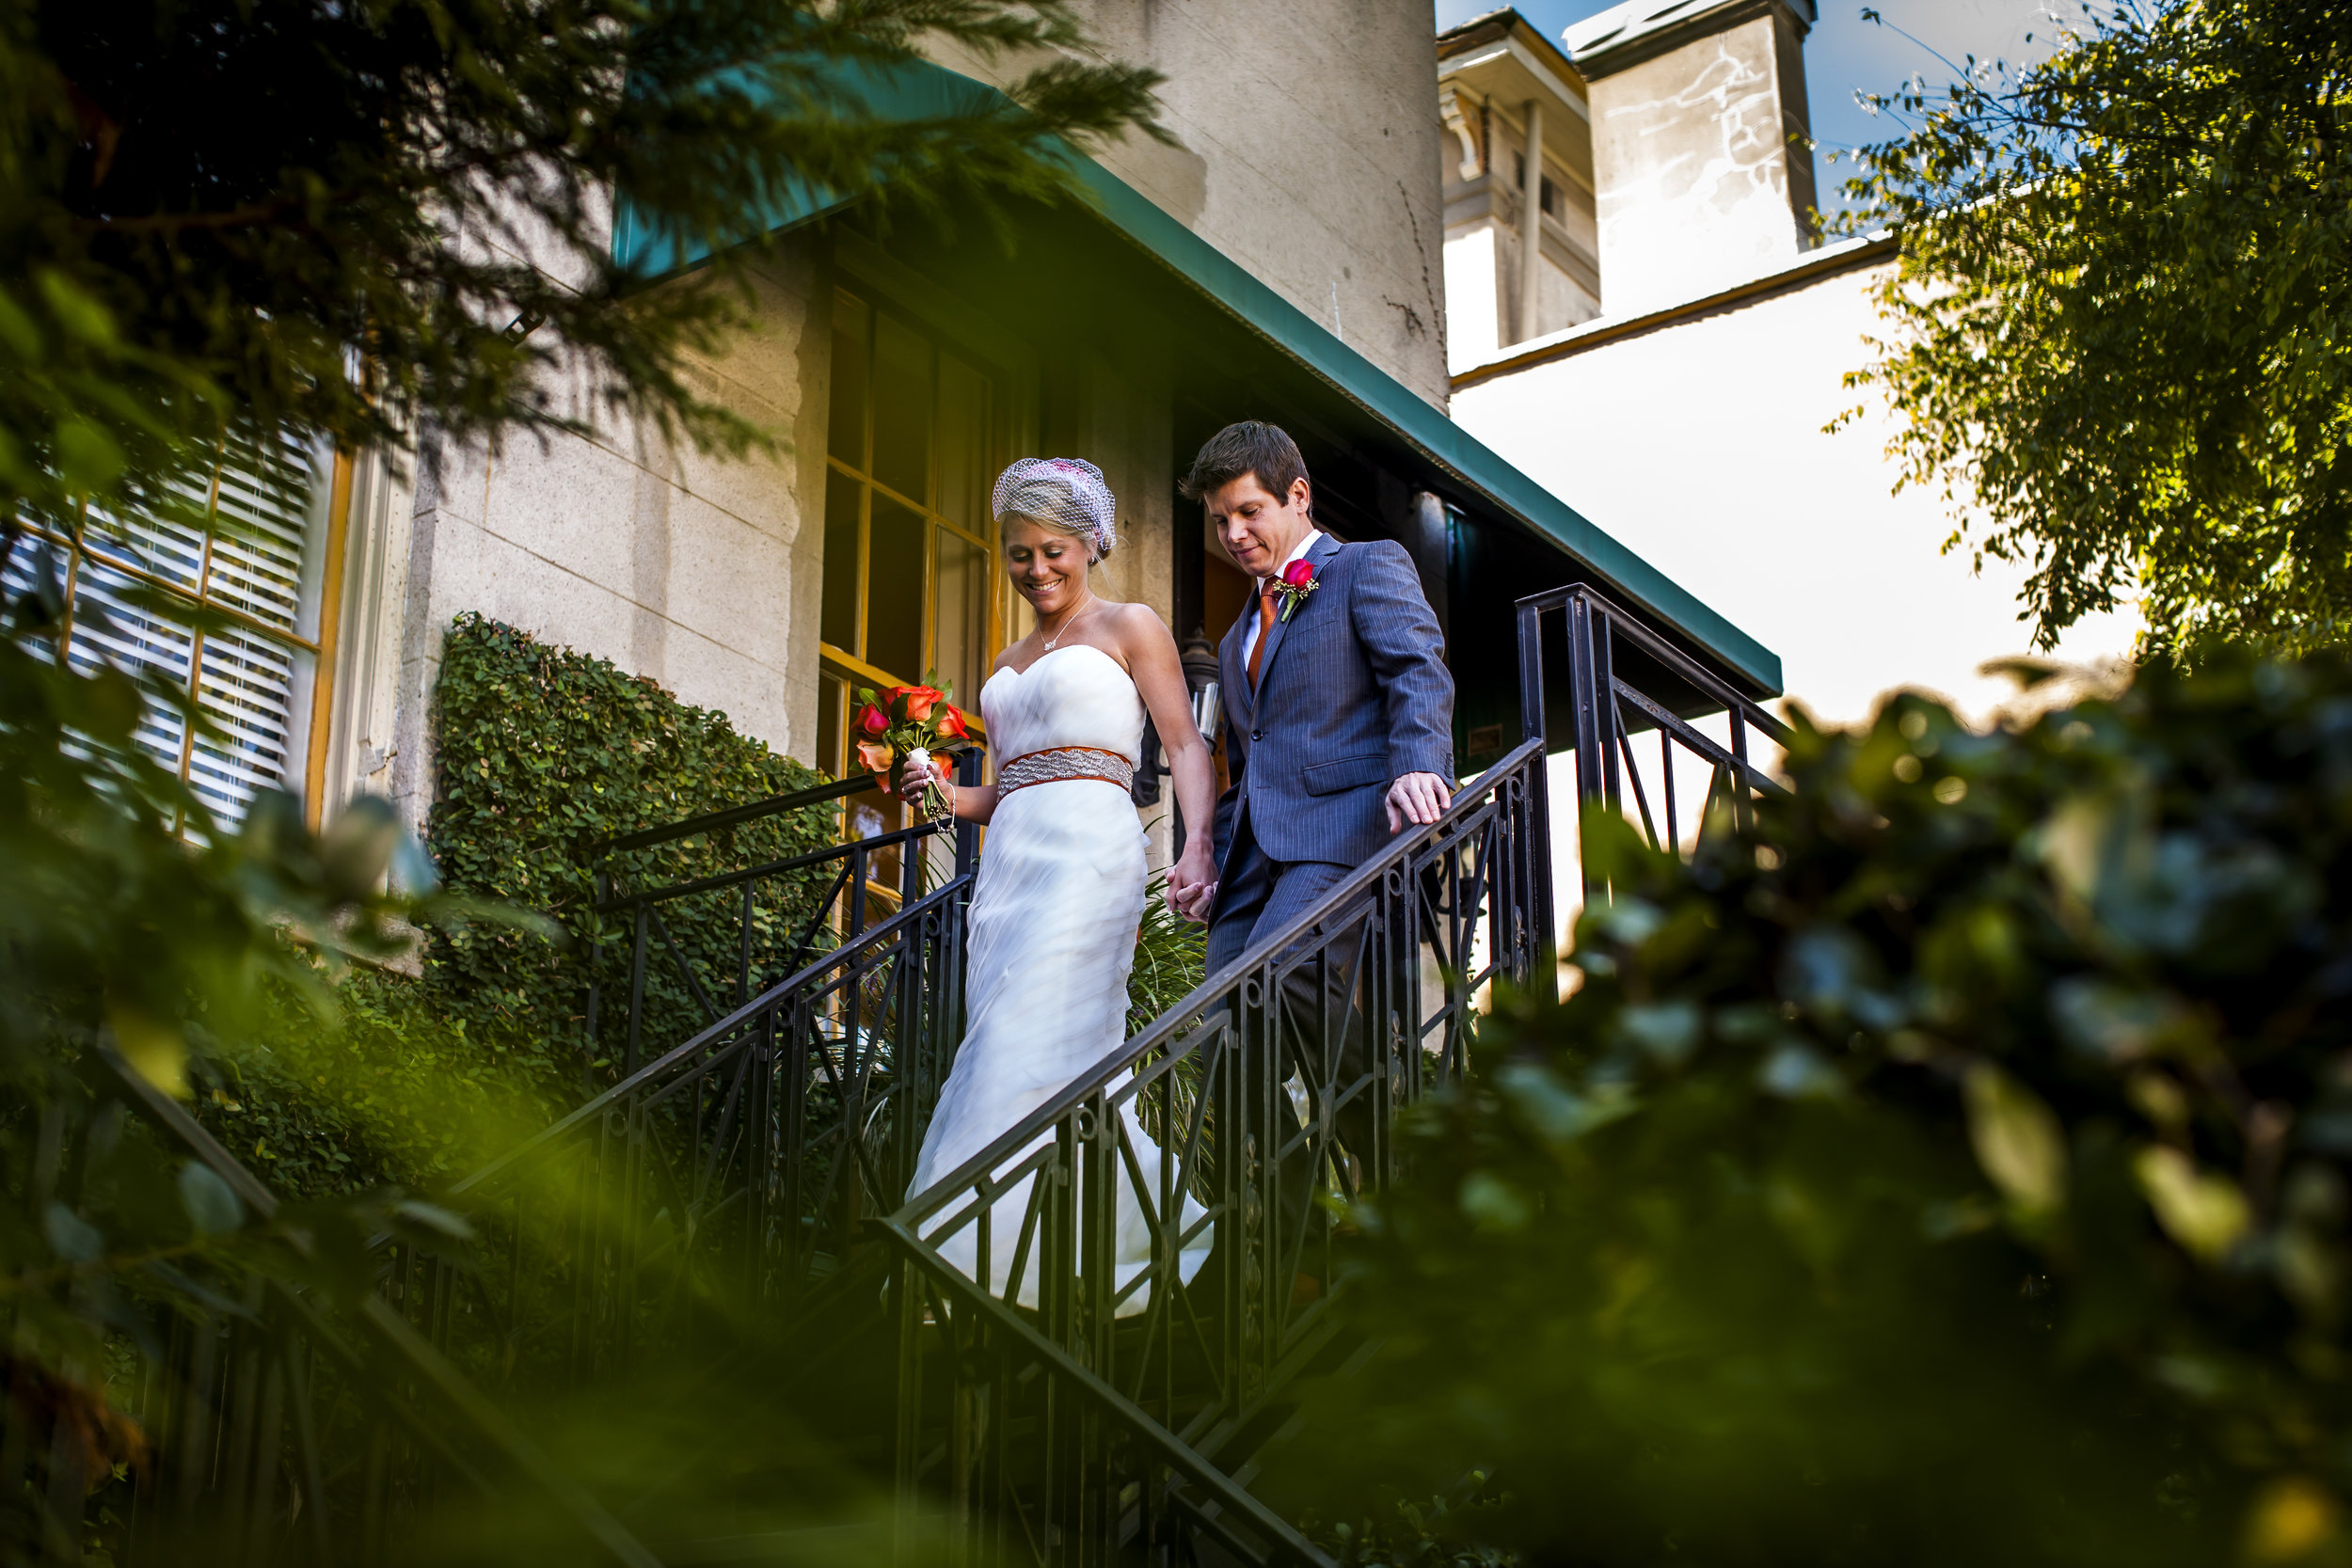 Savannah-photographer-elopement-forsyth-park (6).jpg